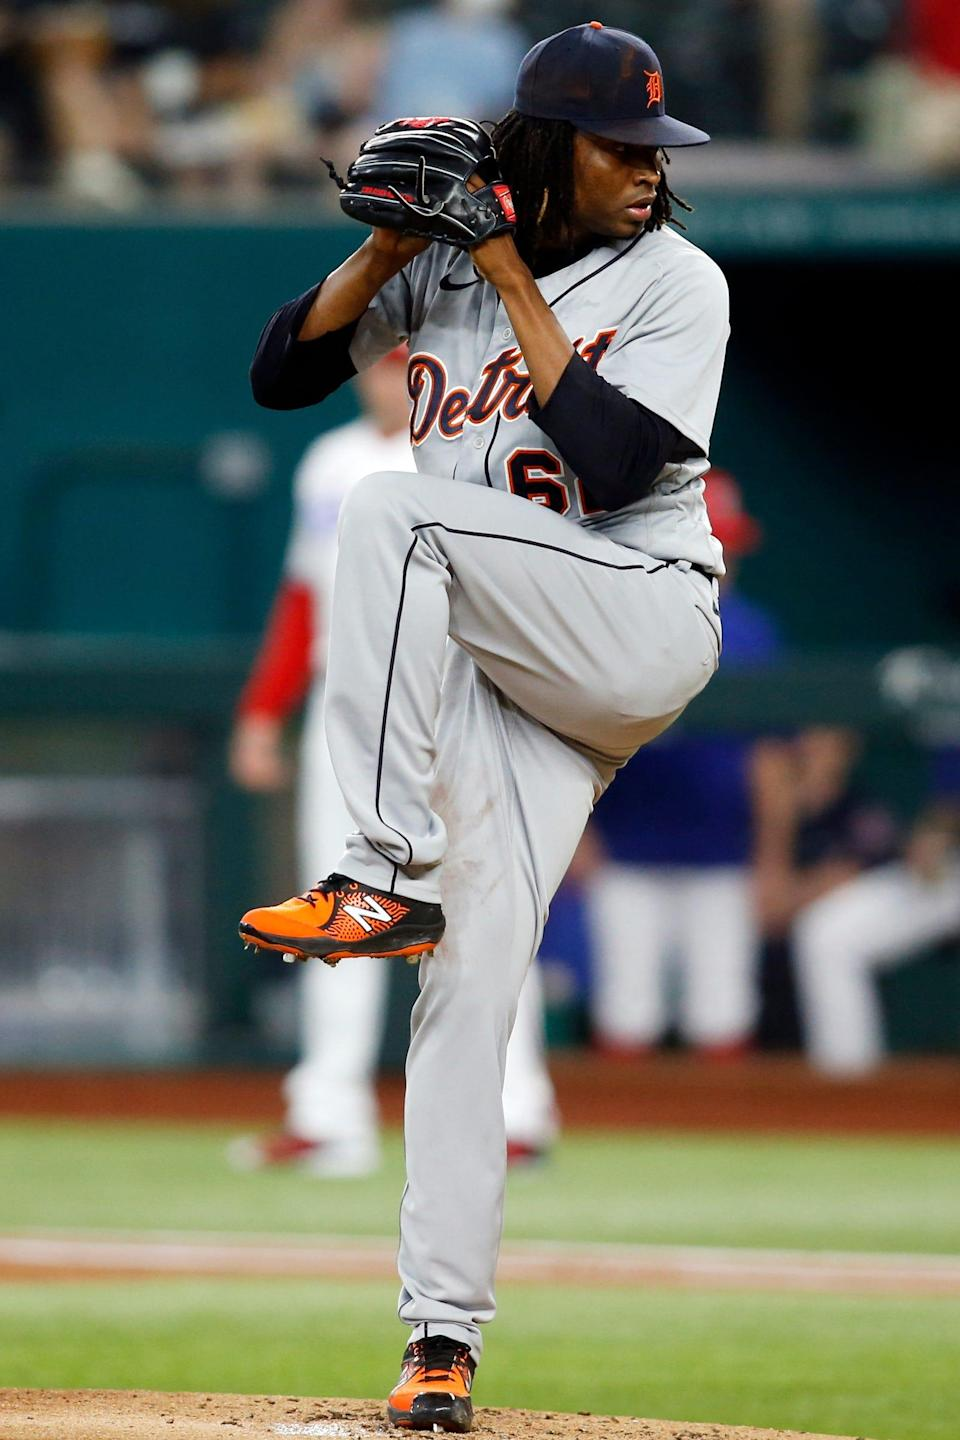 Tigers pitcher Jose Urena throws a pitch in the first inning in Arlington, Texas, Tuesday, July 6, 2021.